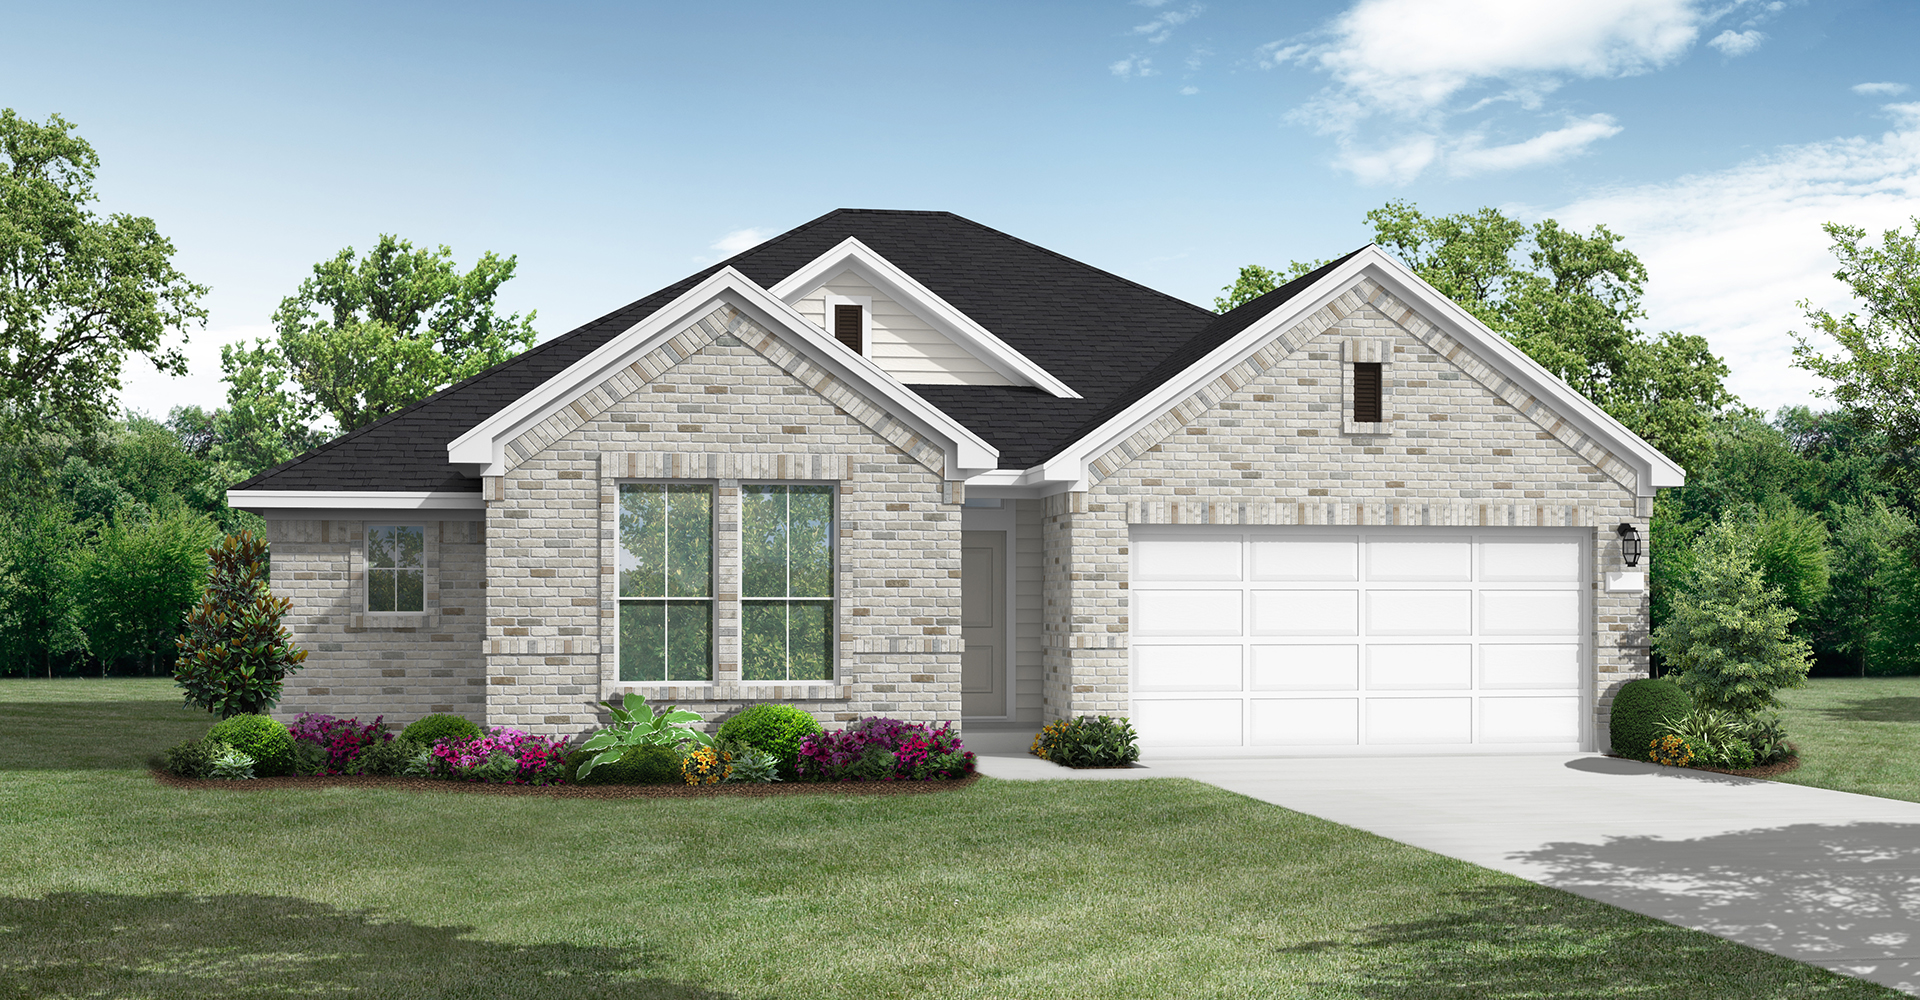 Build On Your Lot In And Around San Antonio Texas Coventry Homes Build On Your Lot